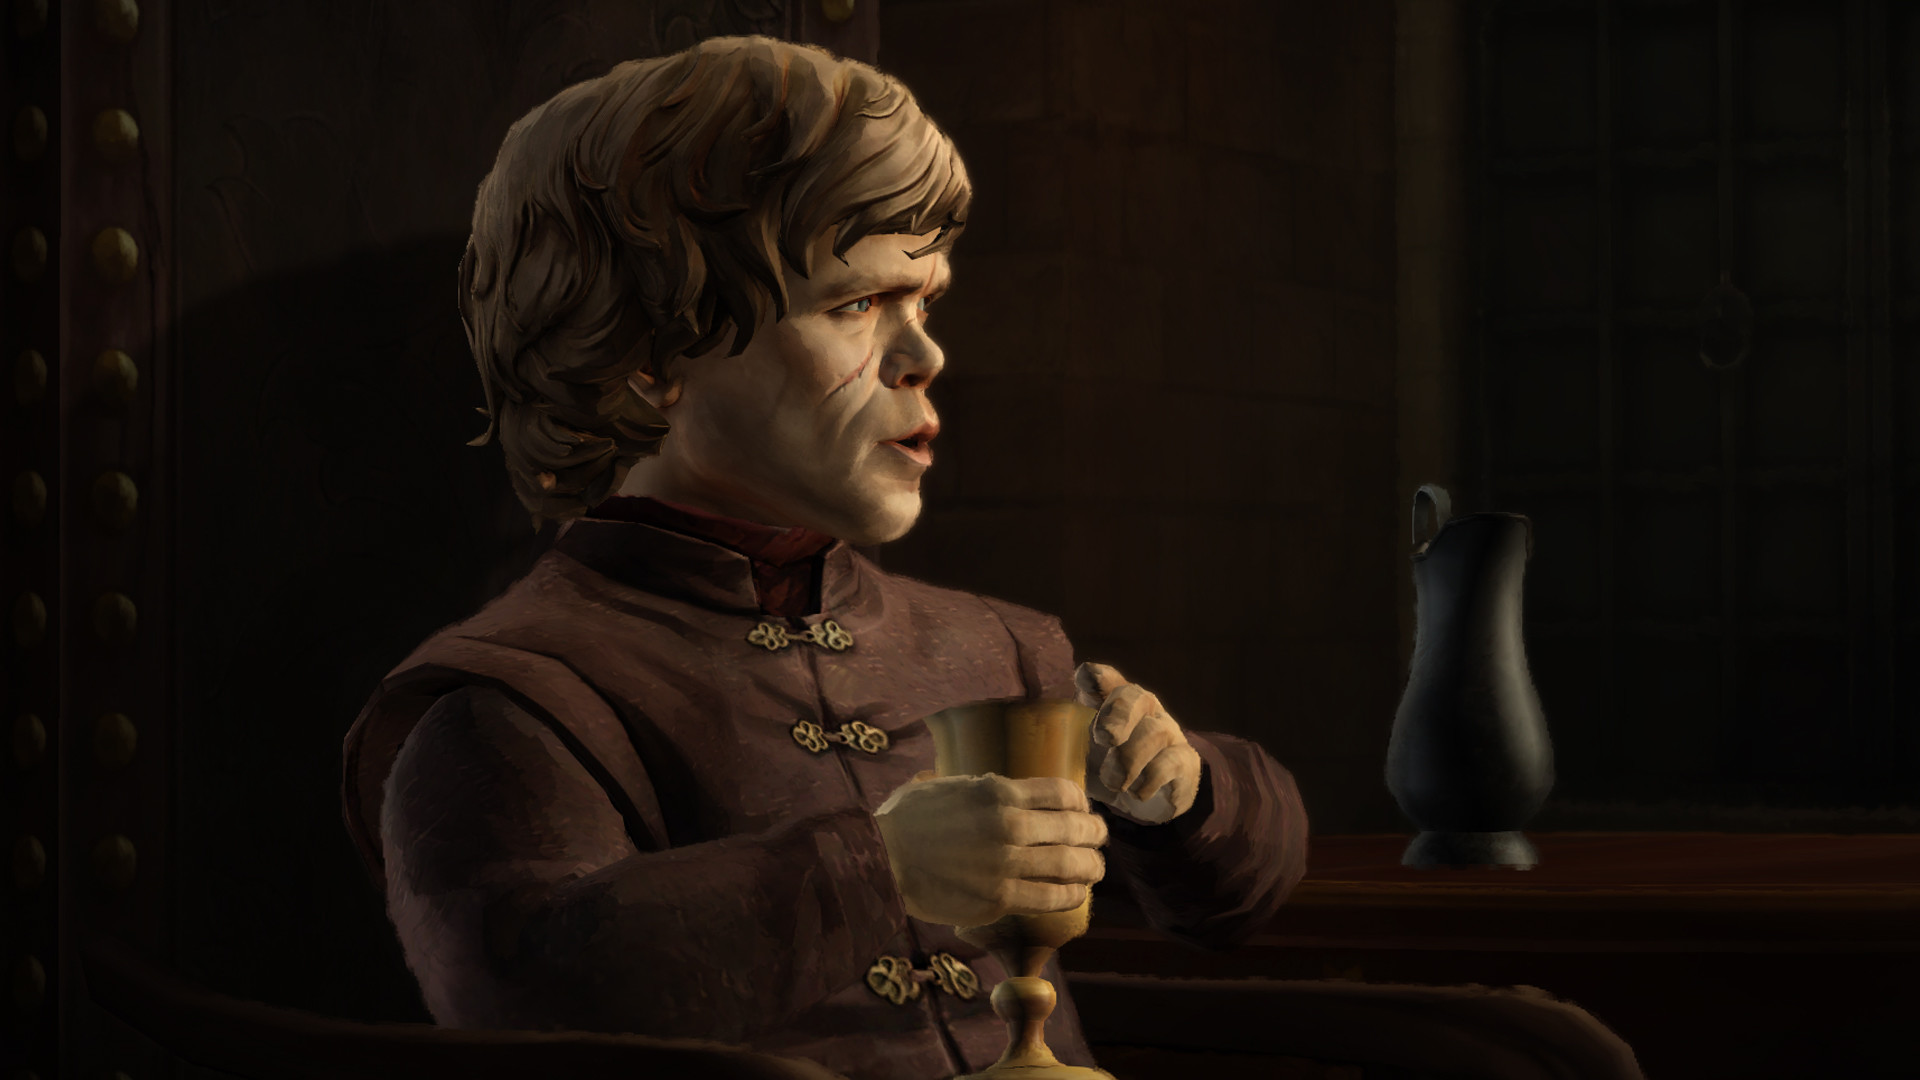 Game of Thrones: Episodes 1-4 [GOG] [2015|Eng] - Скриншот 3